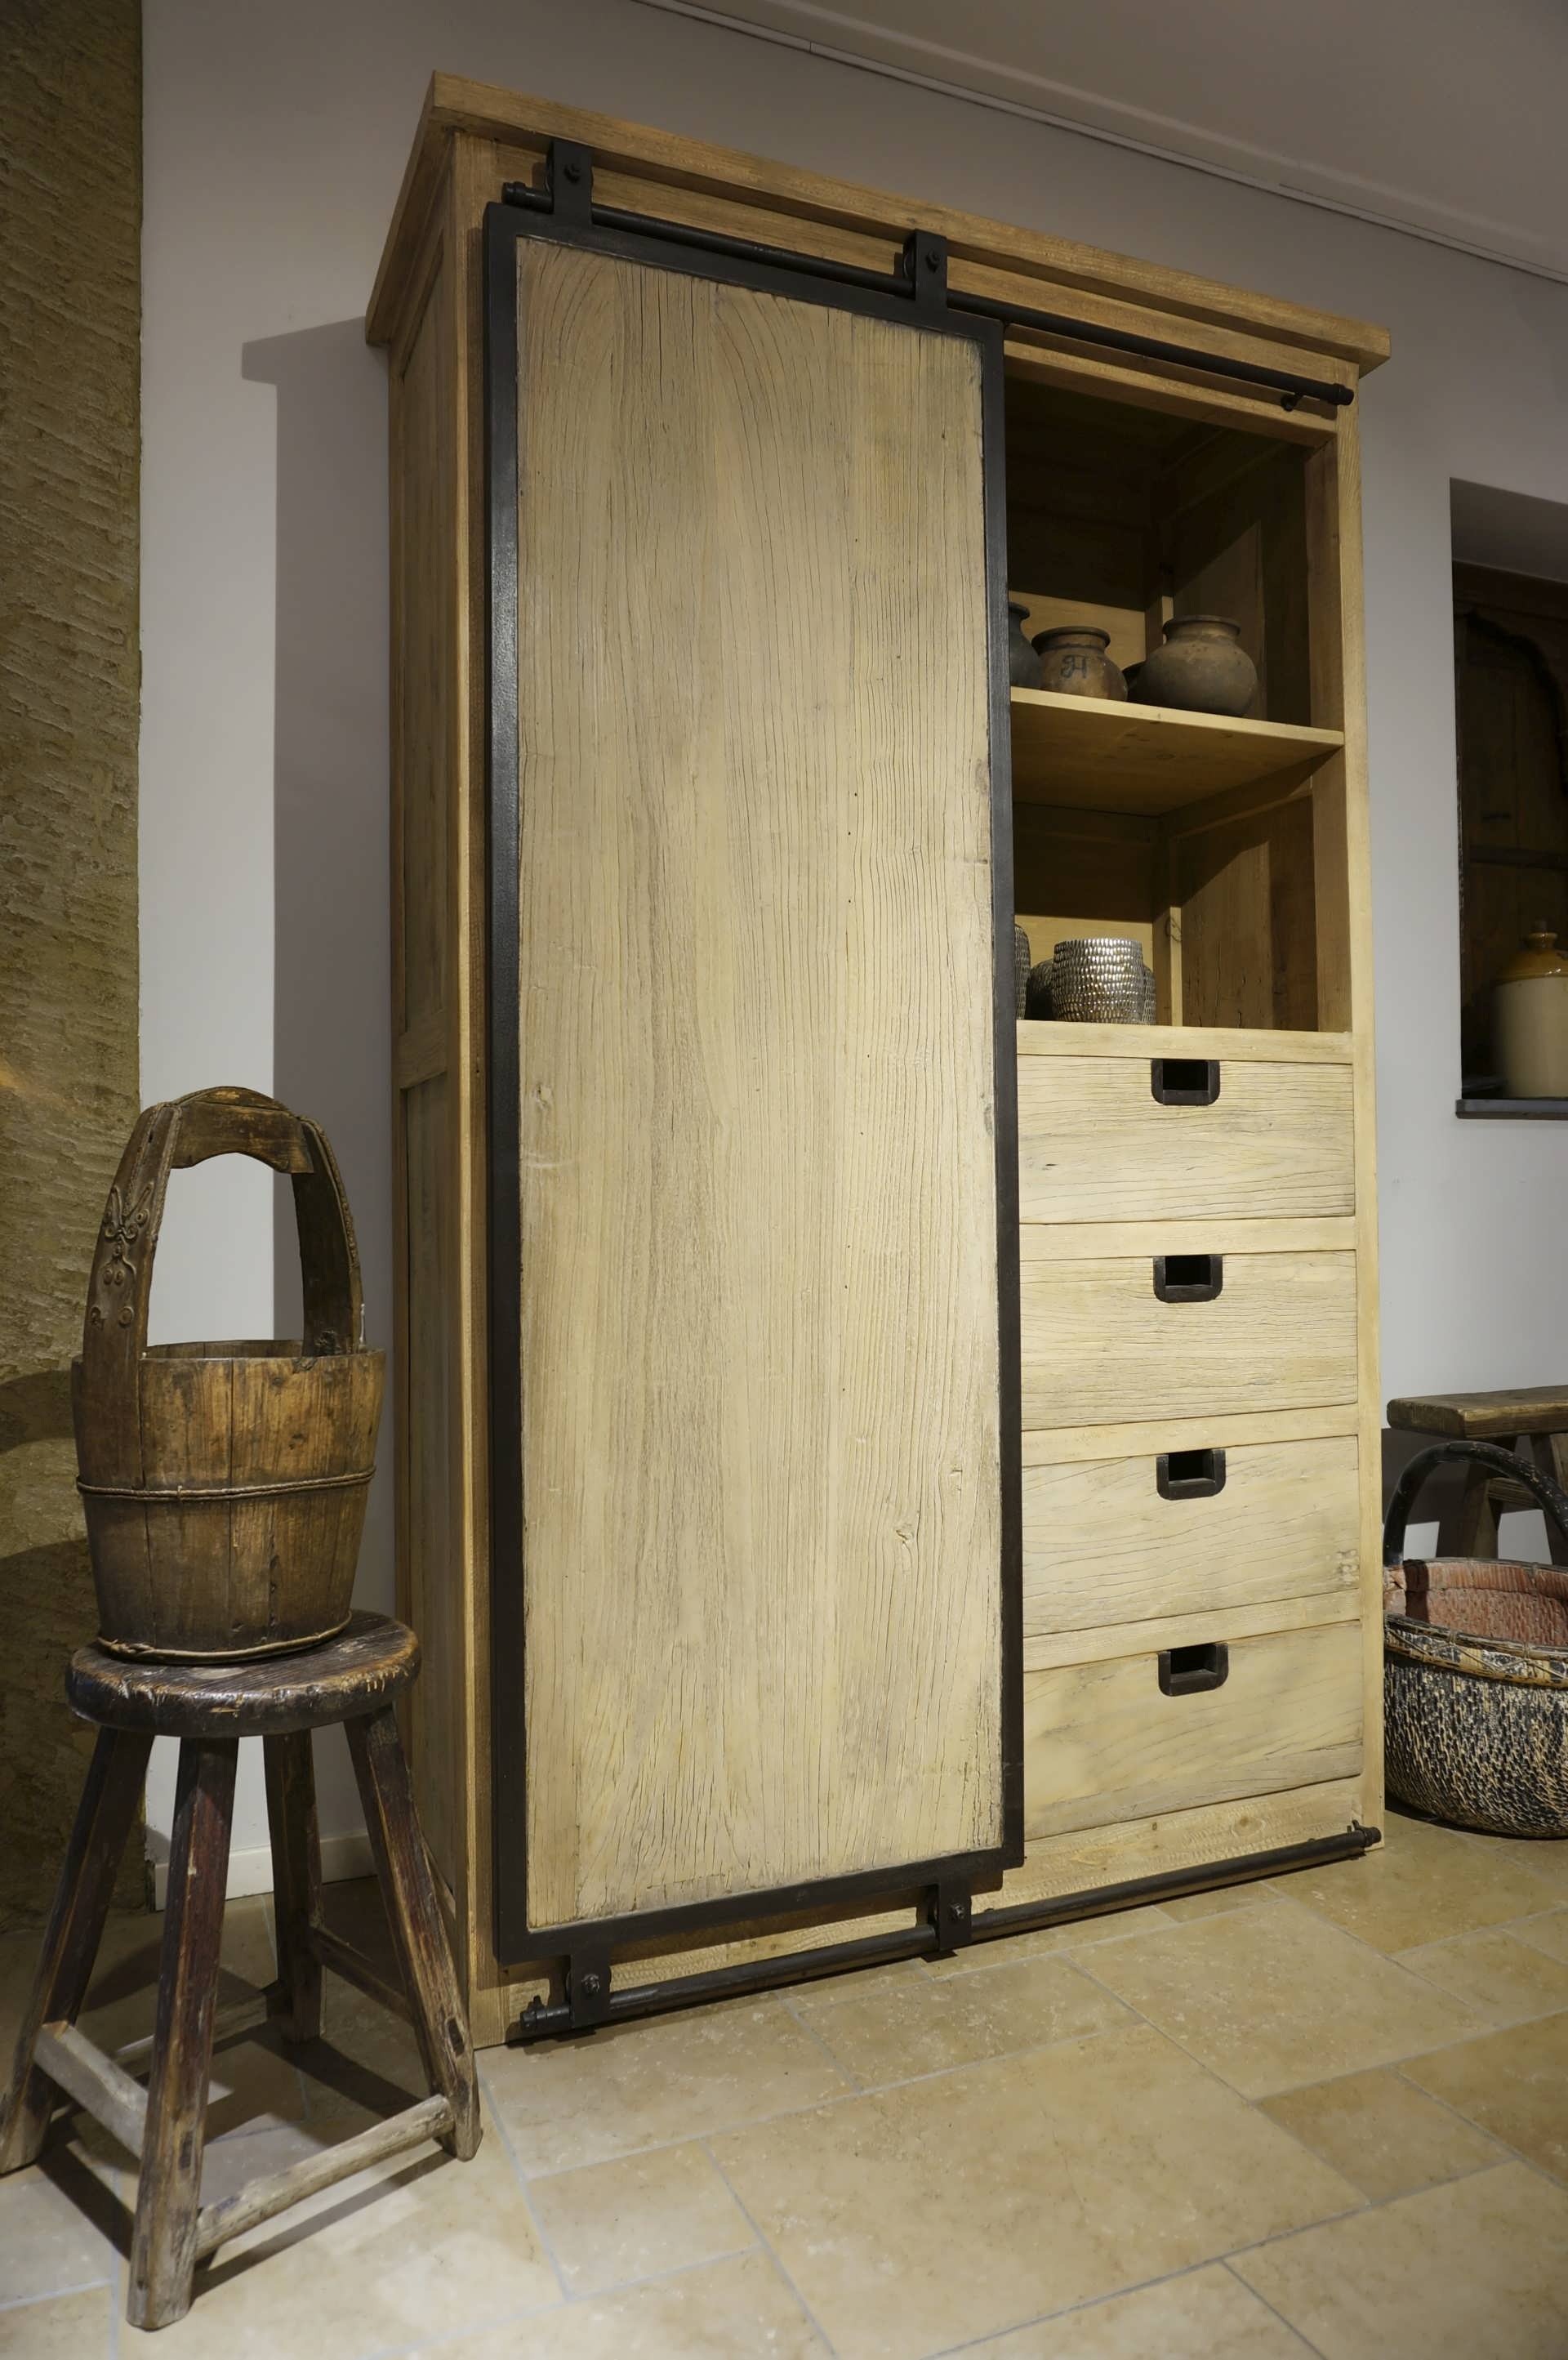 kast chinees hout